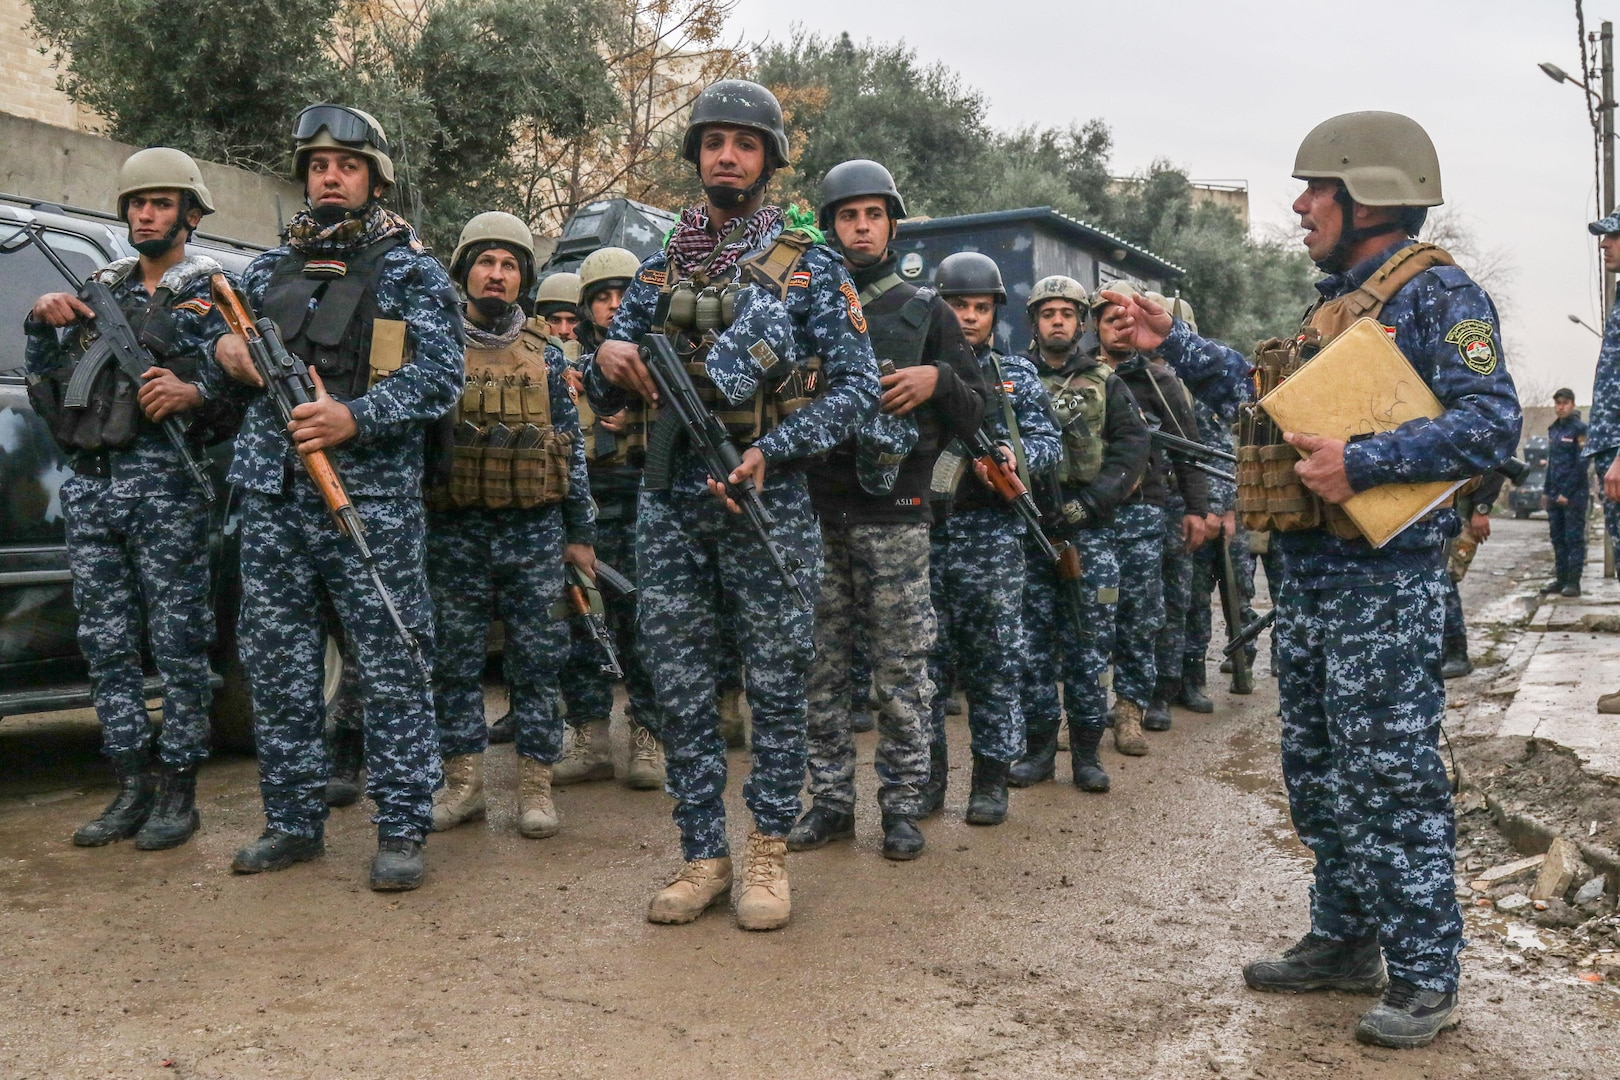 Iraqi federal police stand in formation in West Mosul, Iraq, March 2, 2017. The breadth and diversity of partners supporting the Coalition demonstrate the global and unified nature of the endeavor to defeat ISIS. Combined Joint Task Force-Operation Inherent Resolve is the global Coalition to defeat ISIS in Iraq and Syria. (U.S. Army photo by Staff Sgt. Jason Hull)